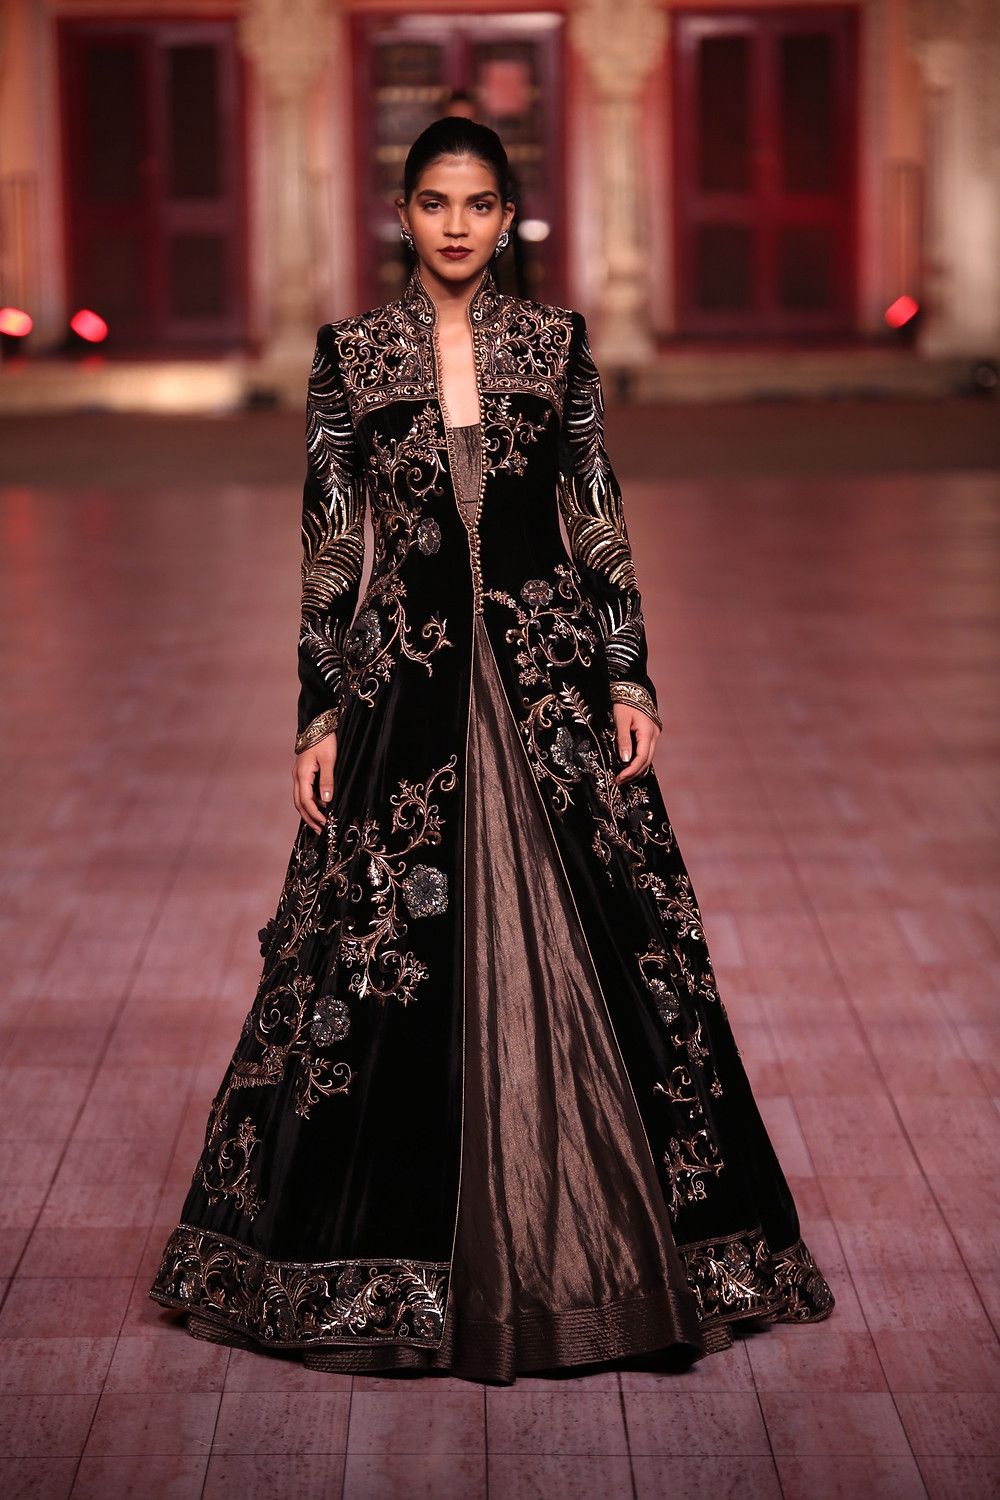 fine embroidery at rohit Bal show at city palace